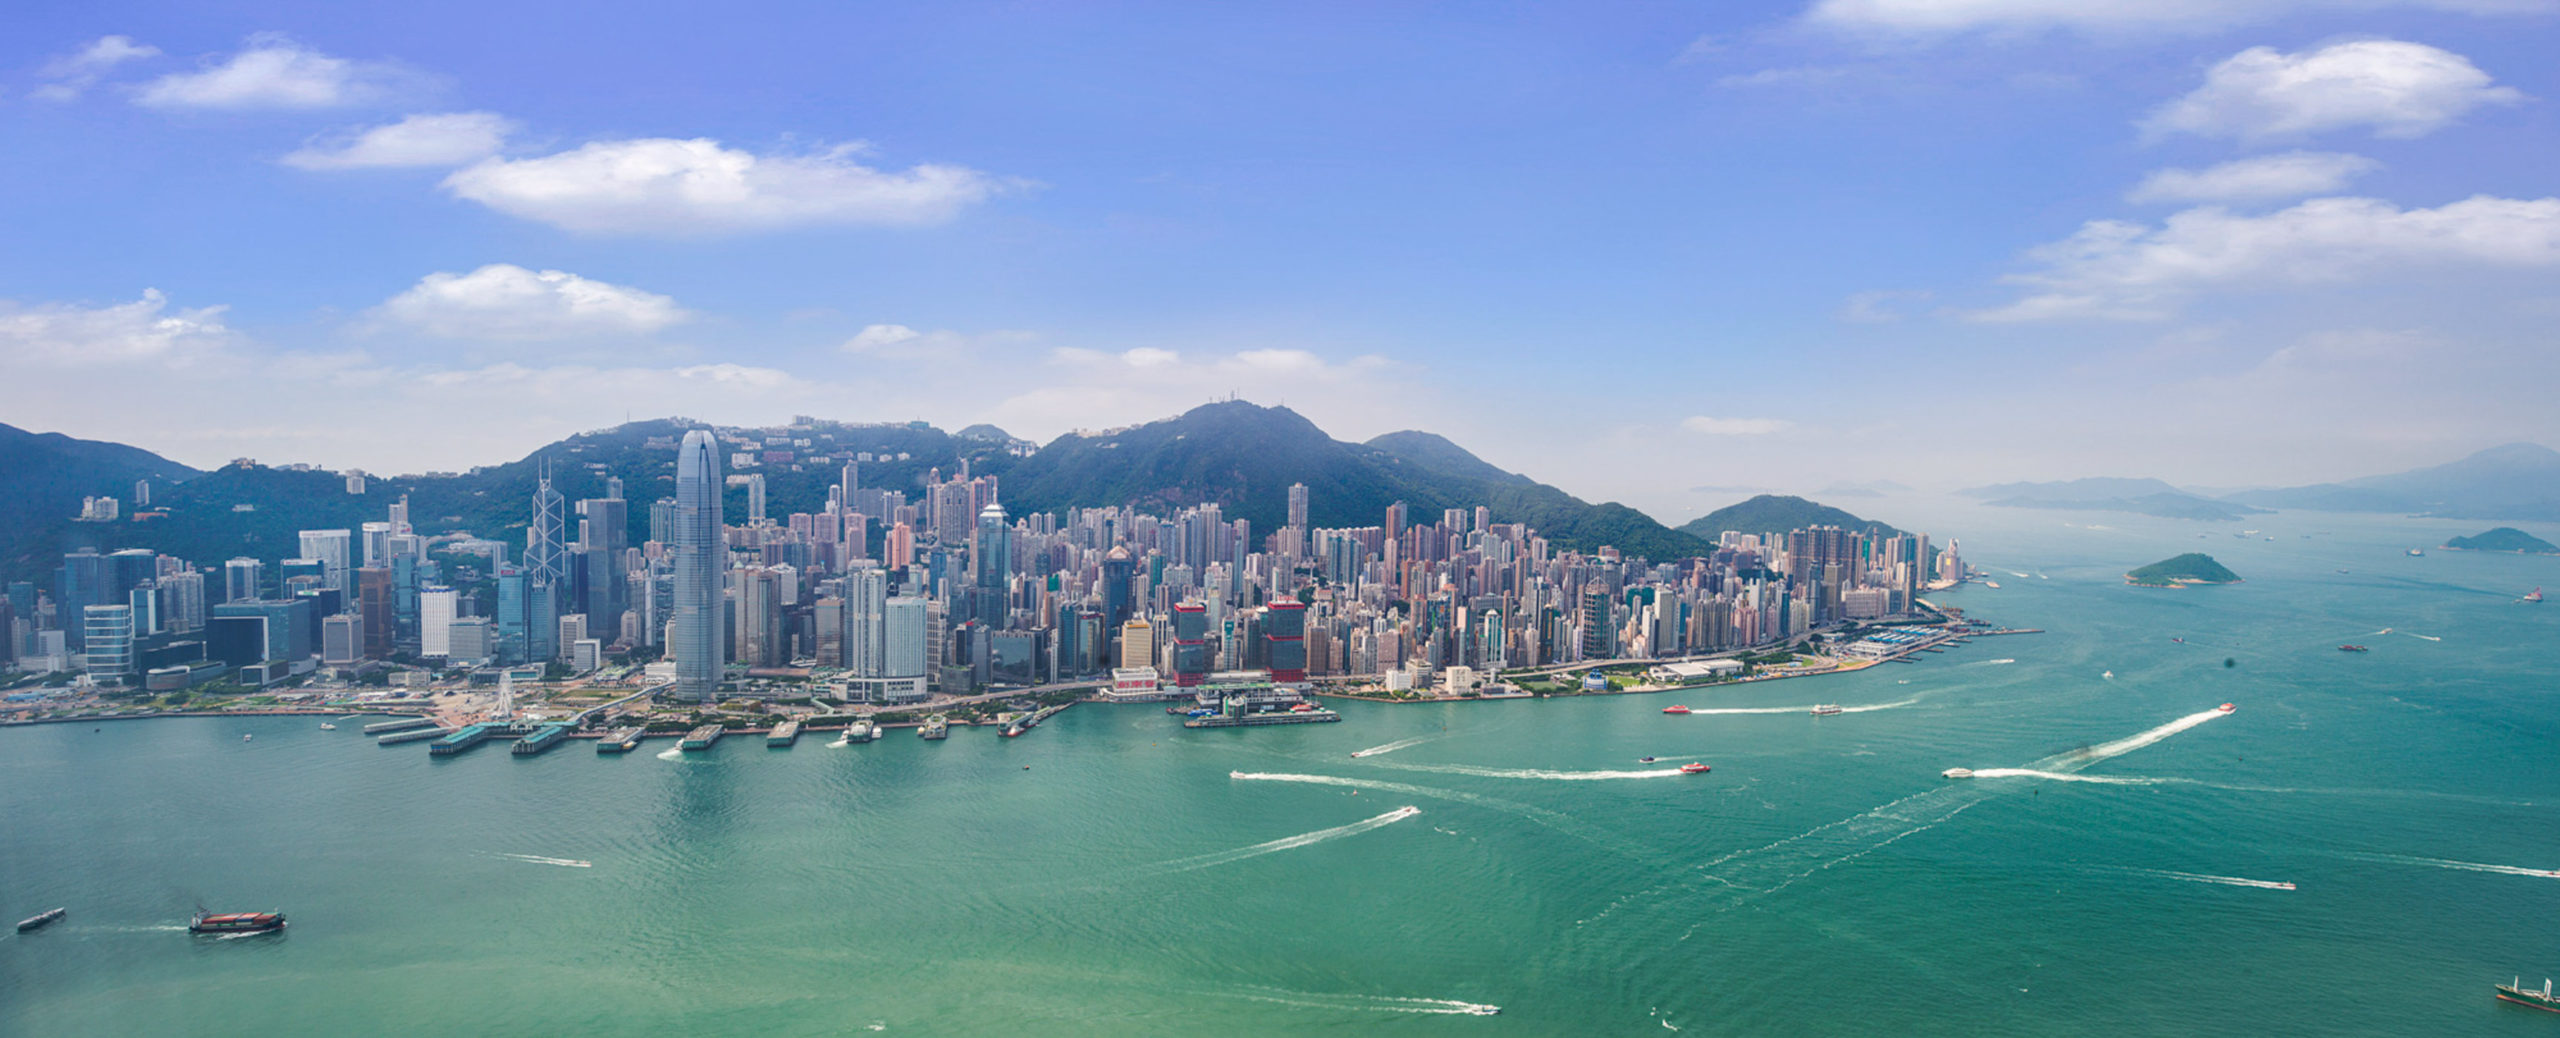 HK-view-at-Day-01